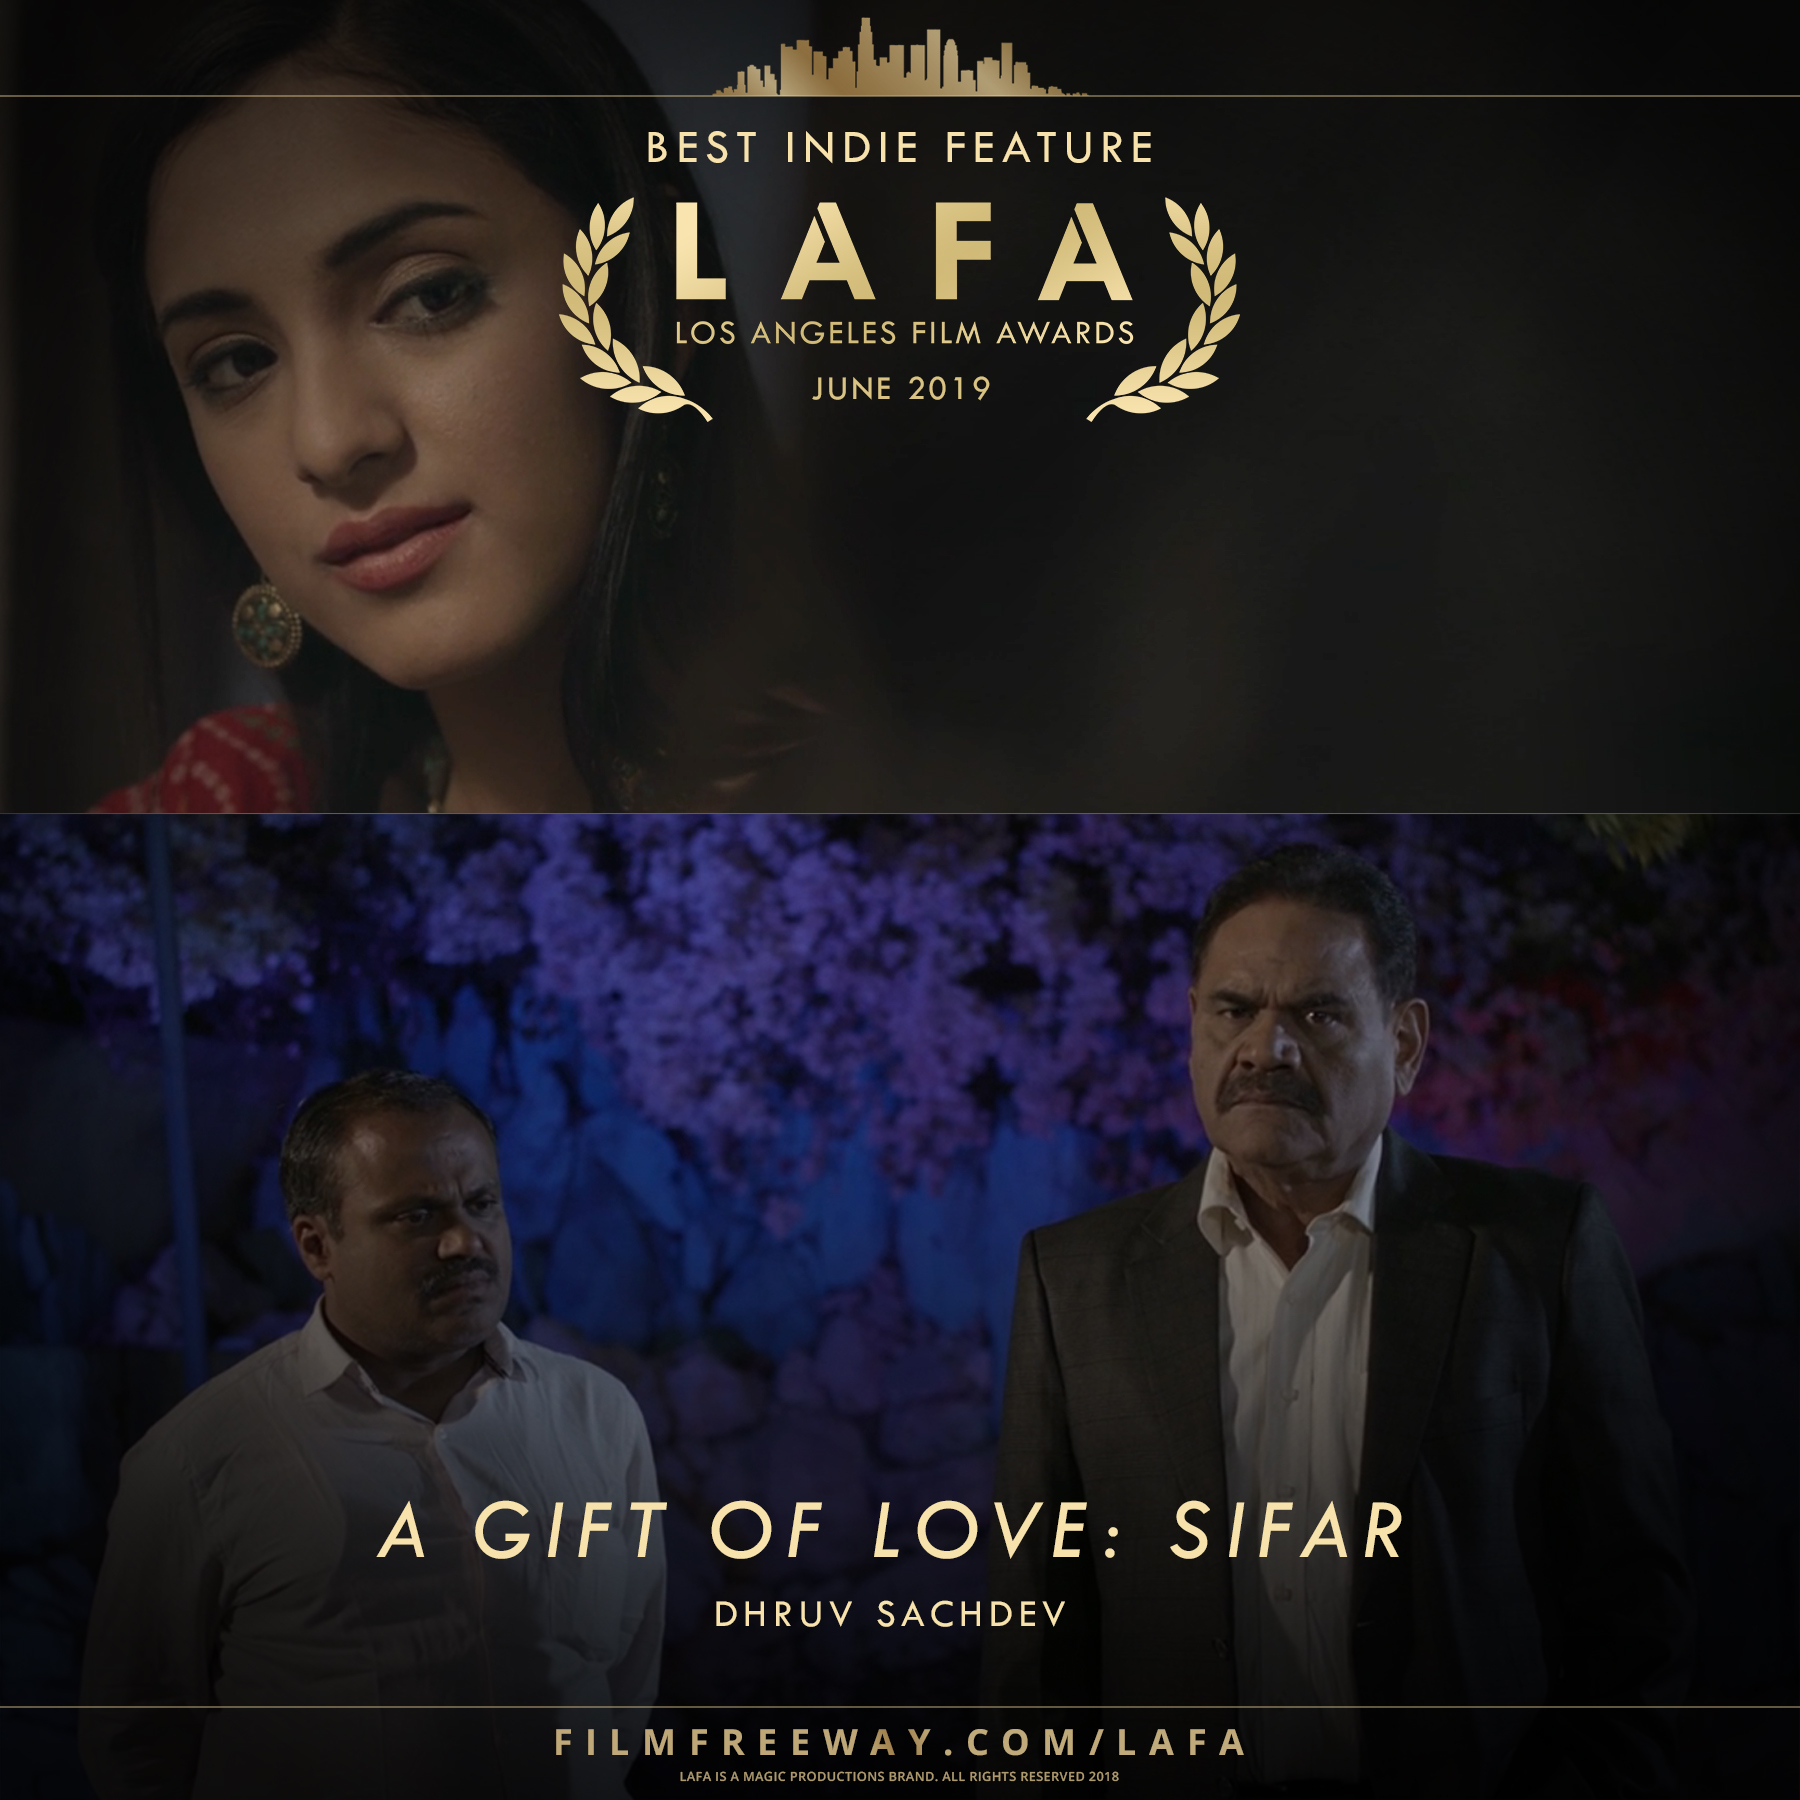 A Gift of Love- Sifar design